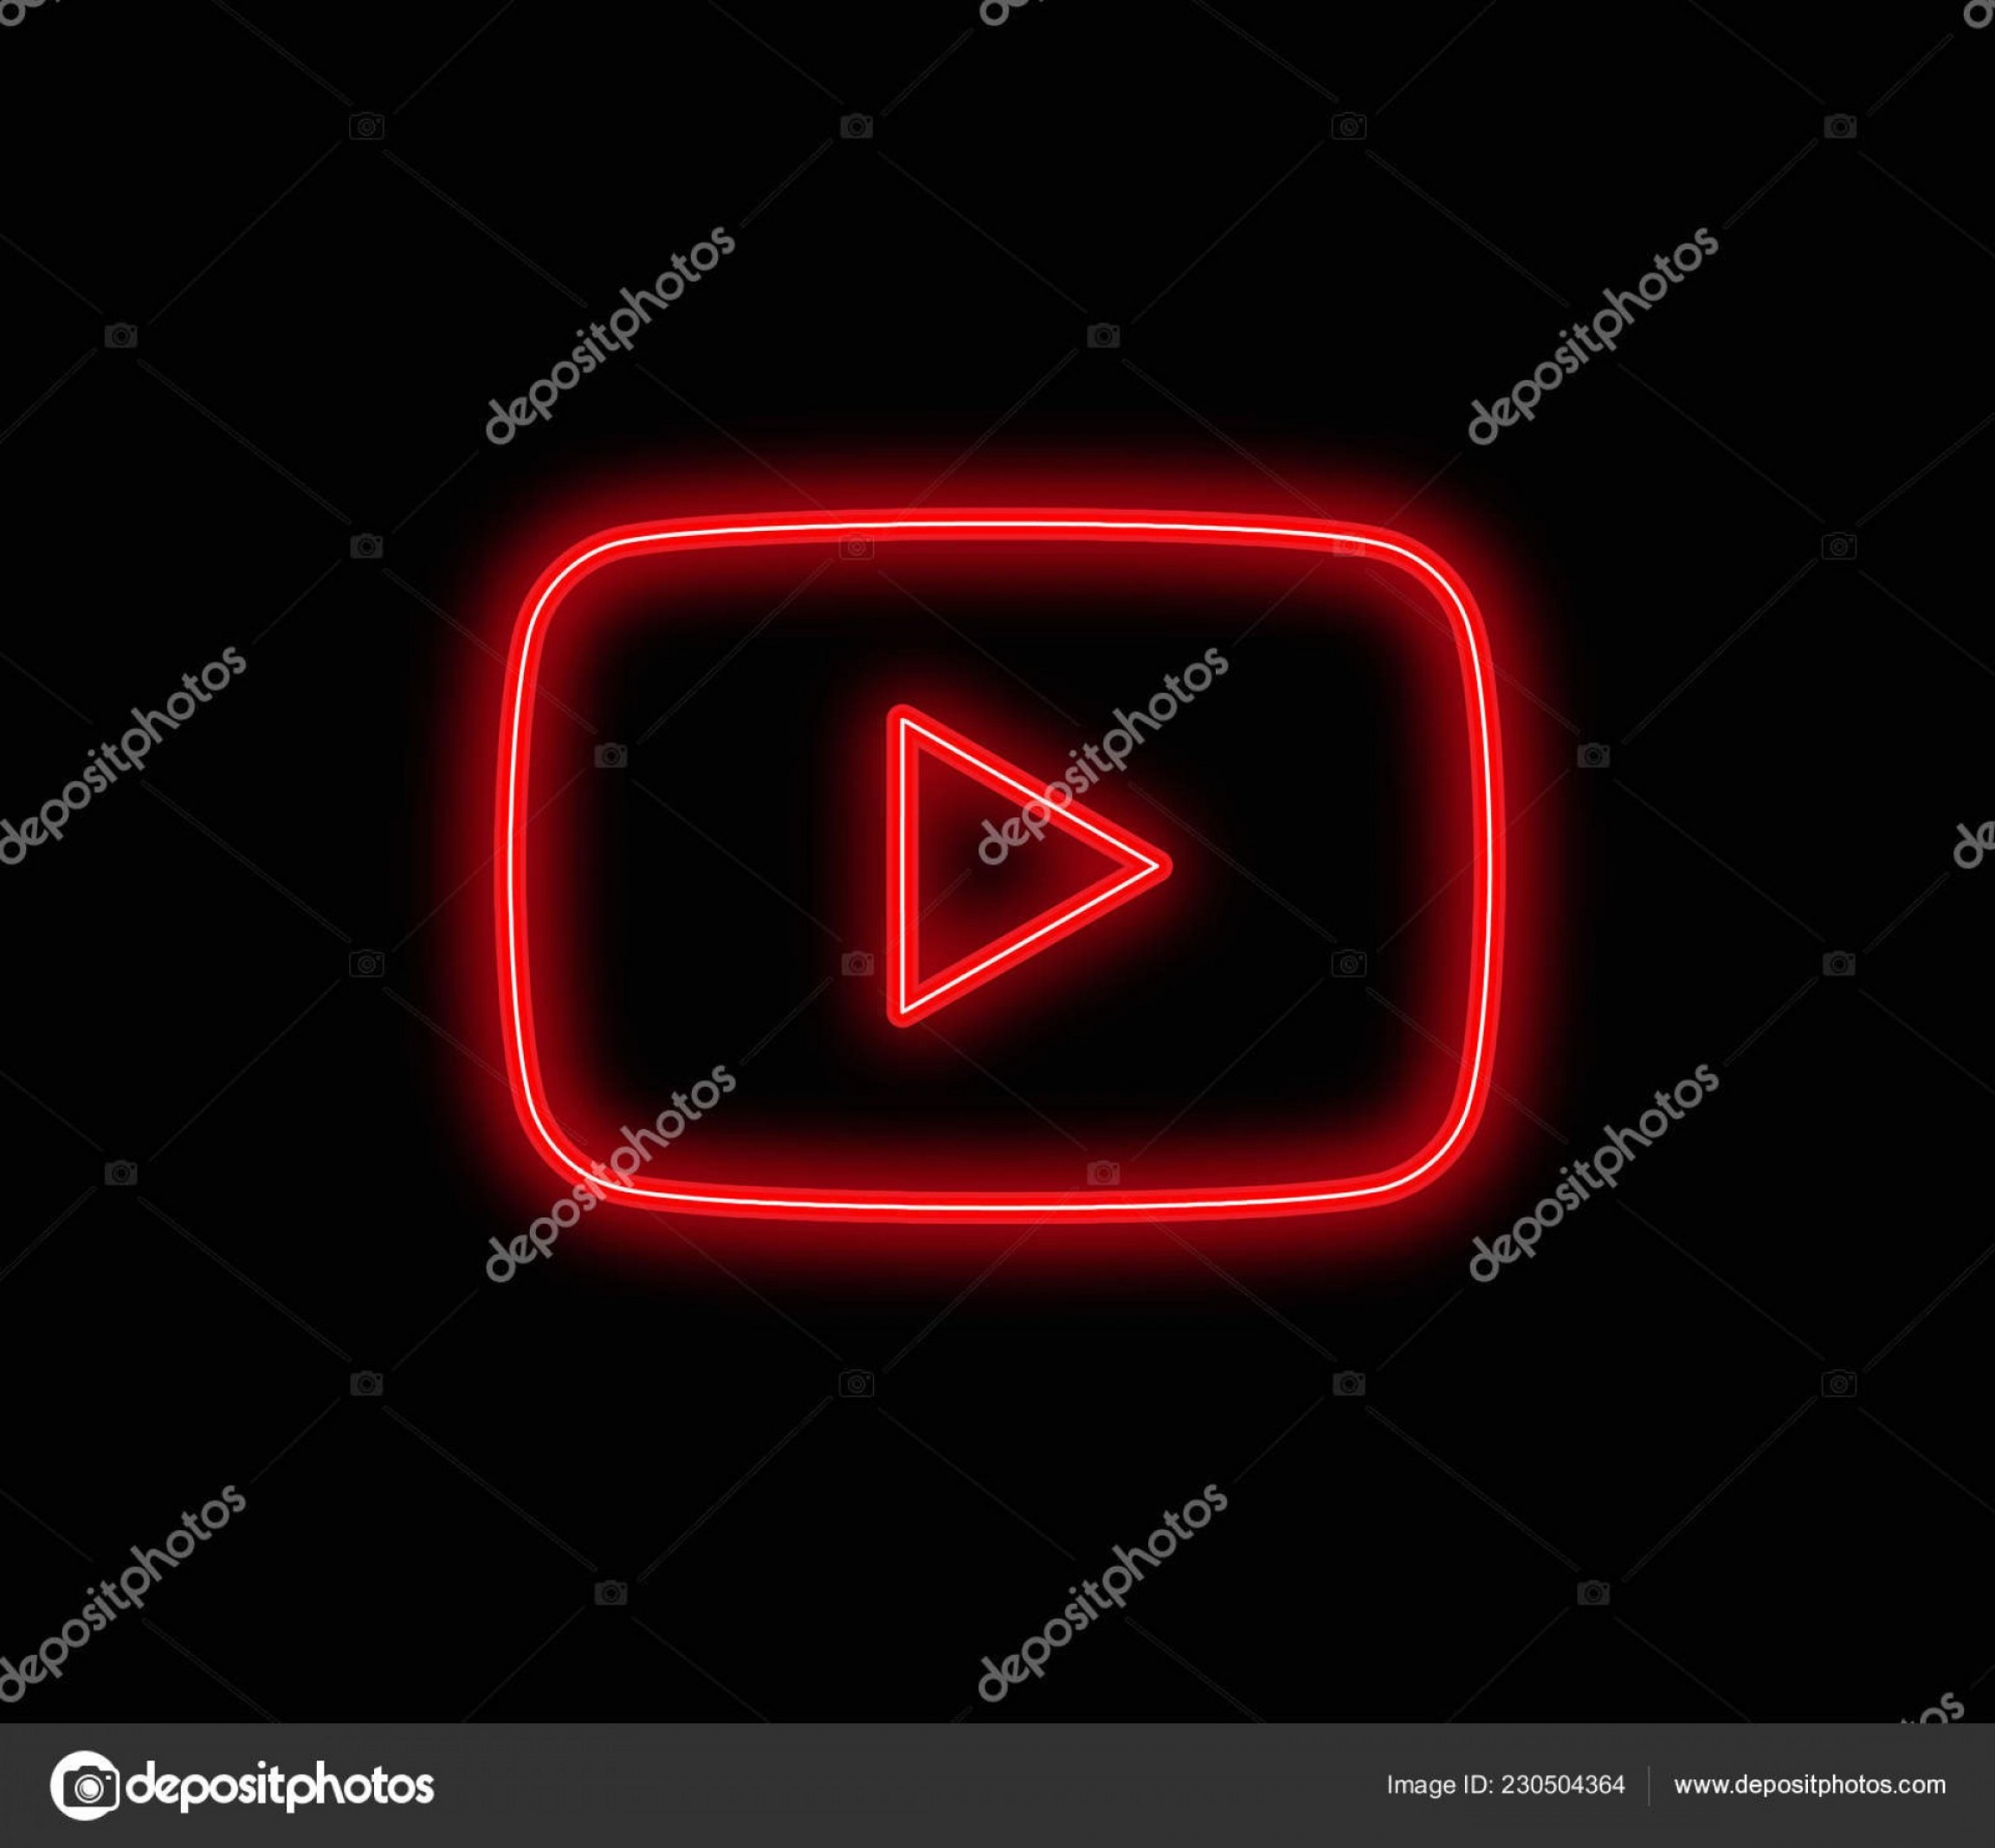 YouTube RedVector Real Life: Stock Illustration Play Icon Vector Sign